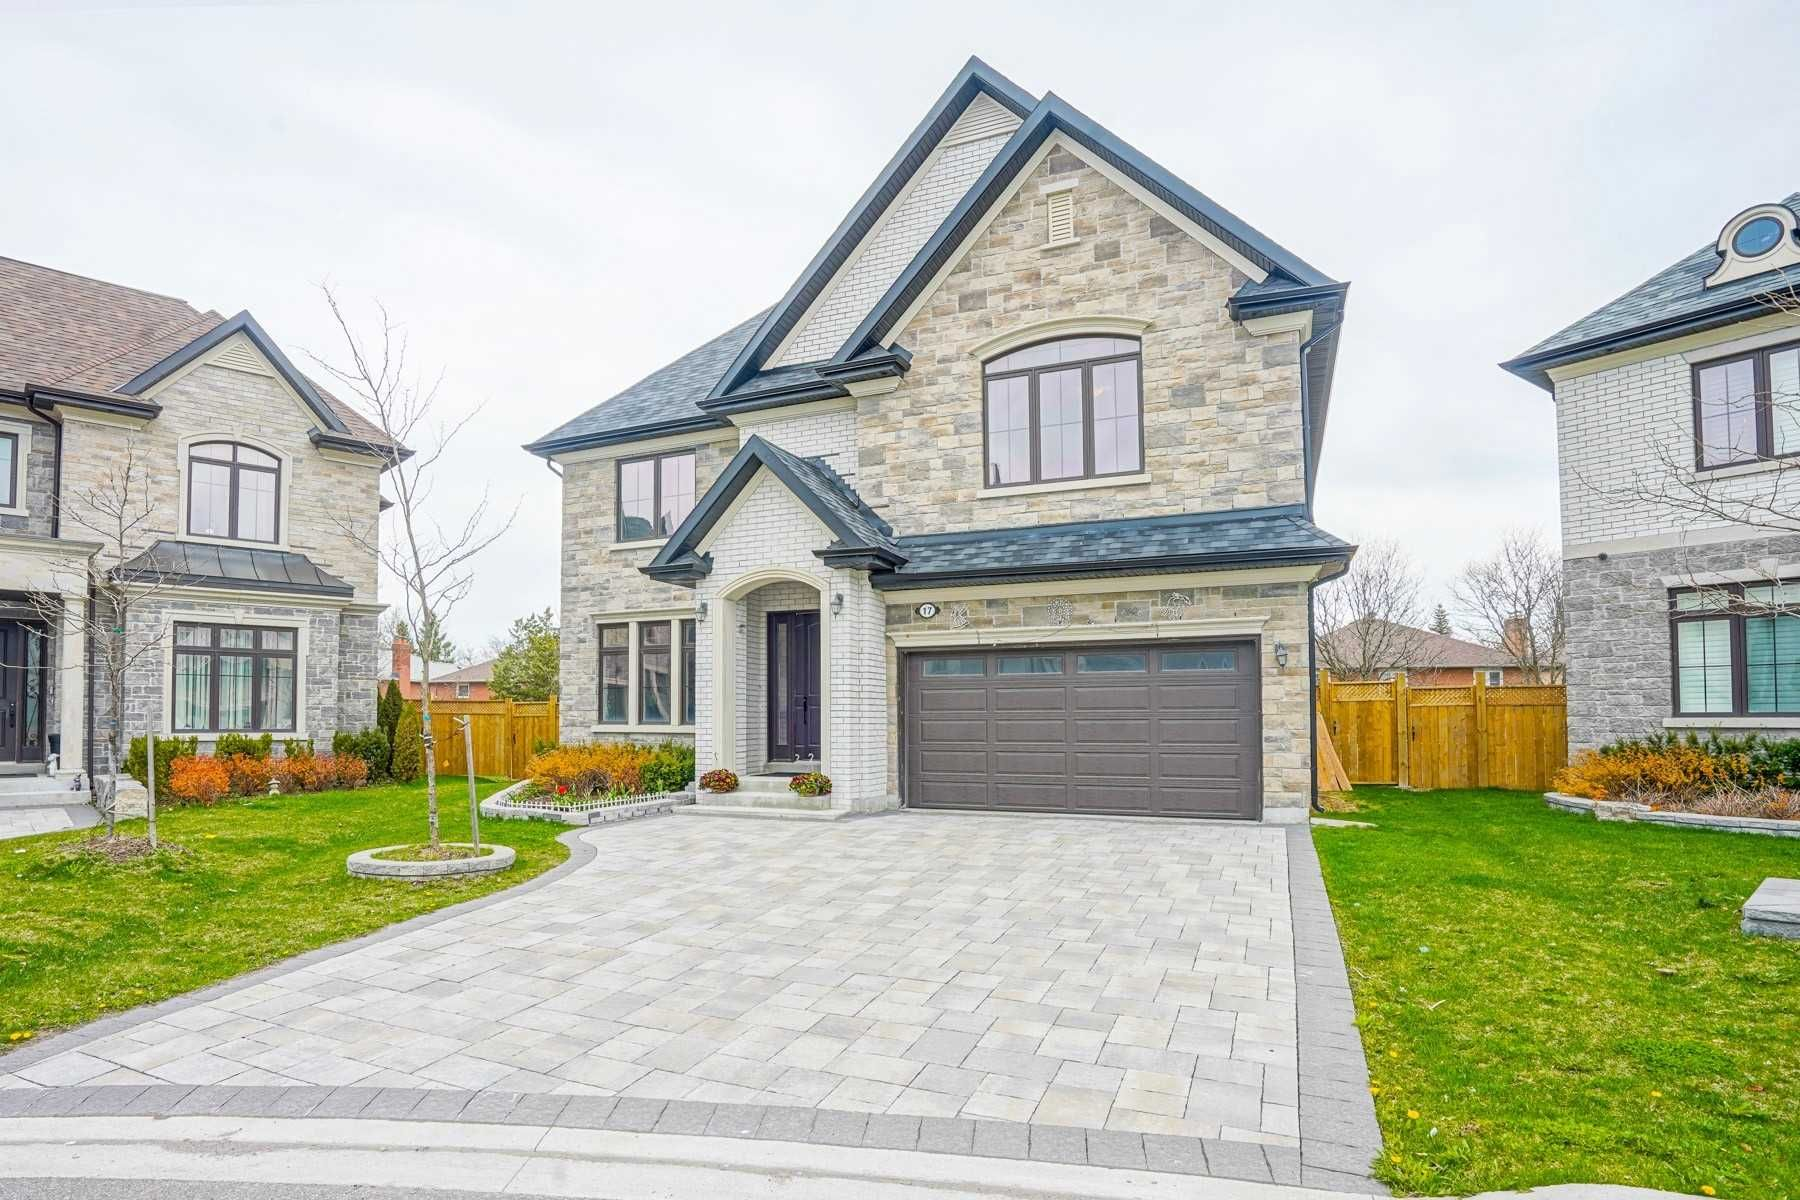 Main Photo: Highway 7 & Warden Ave in : Unionville Freehold for sale (Markham)  : MLS®# N4946807